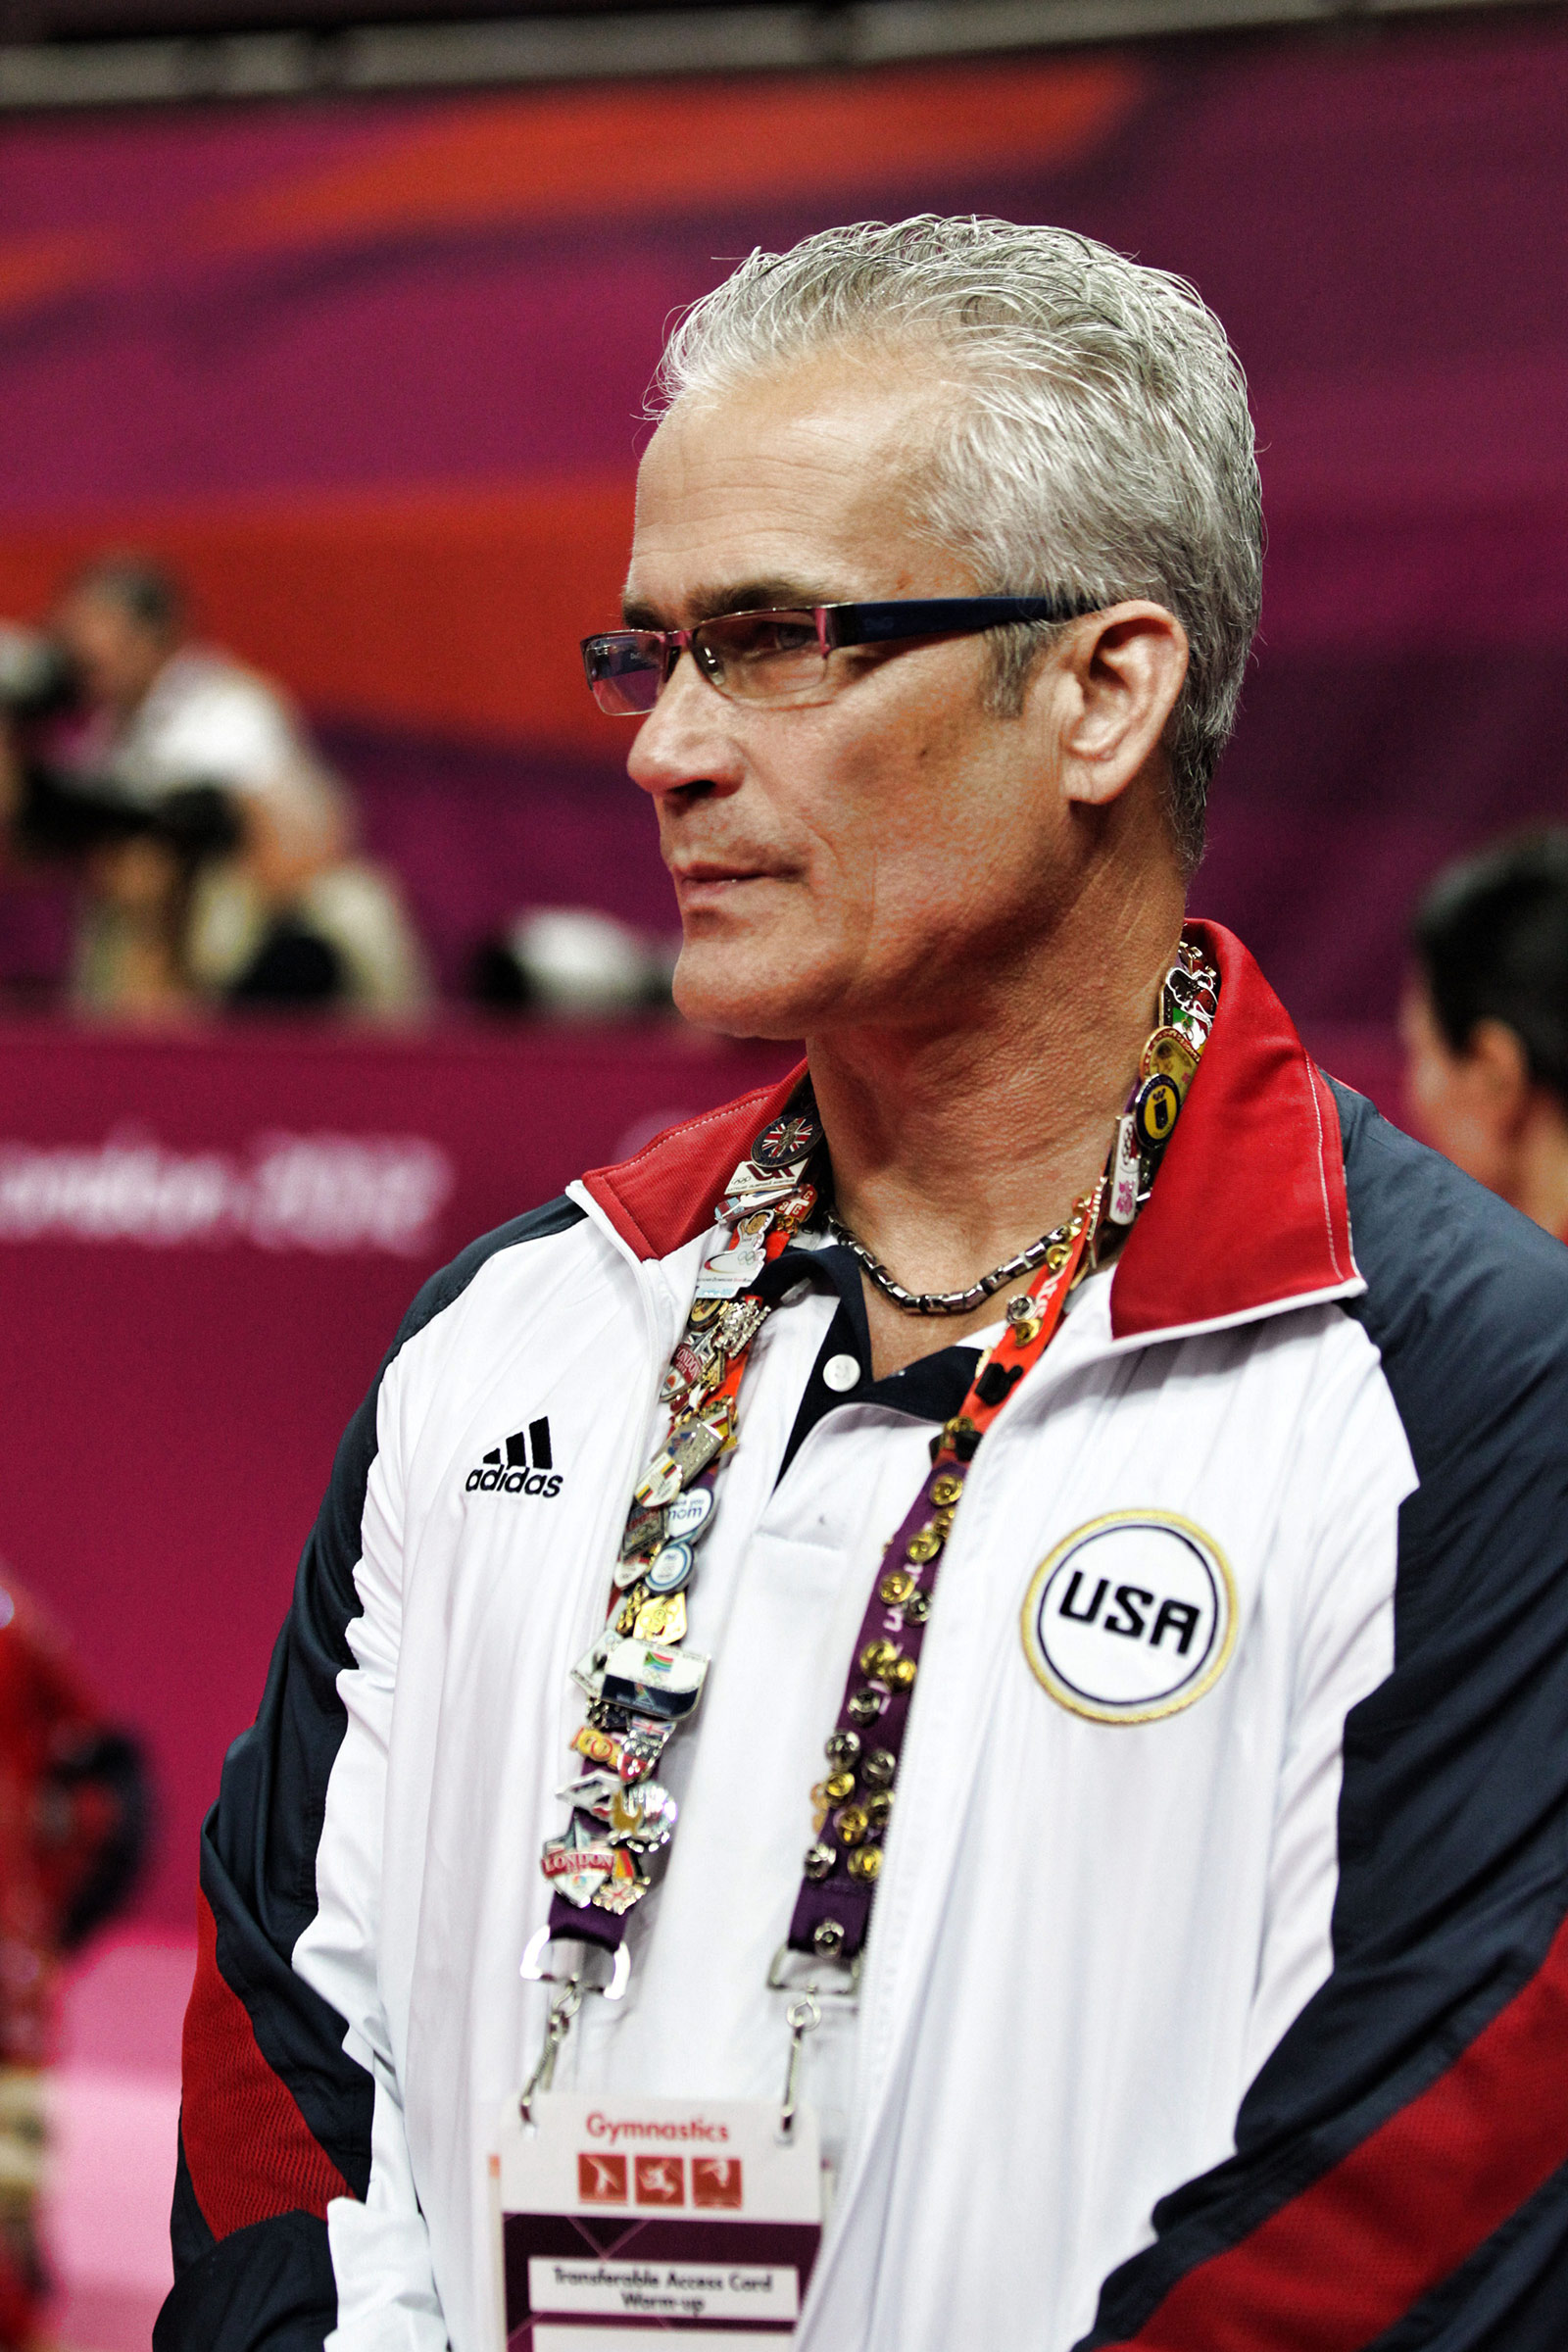 John Geddert at the 2012 Olympics.